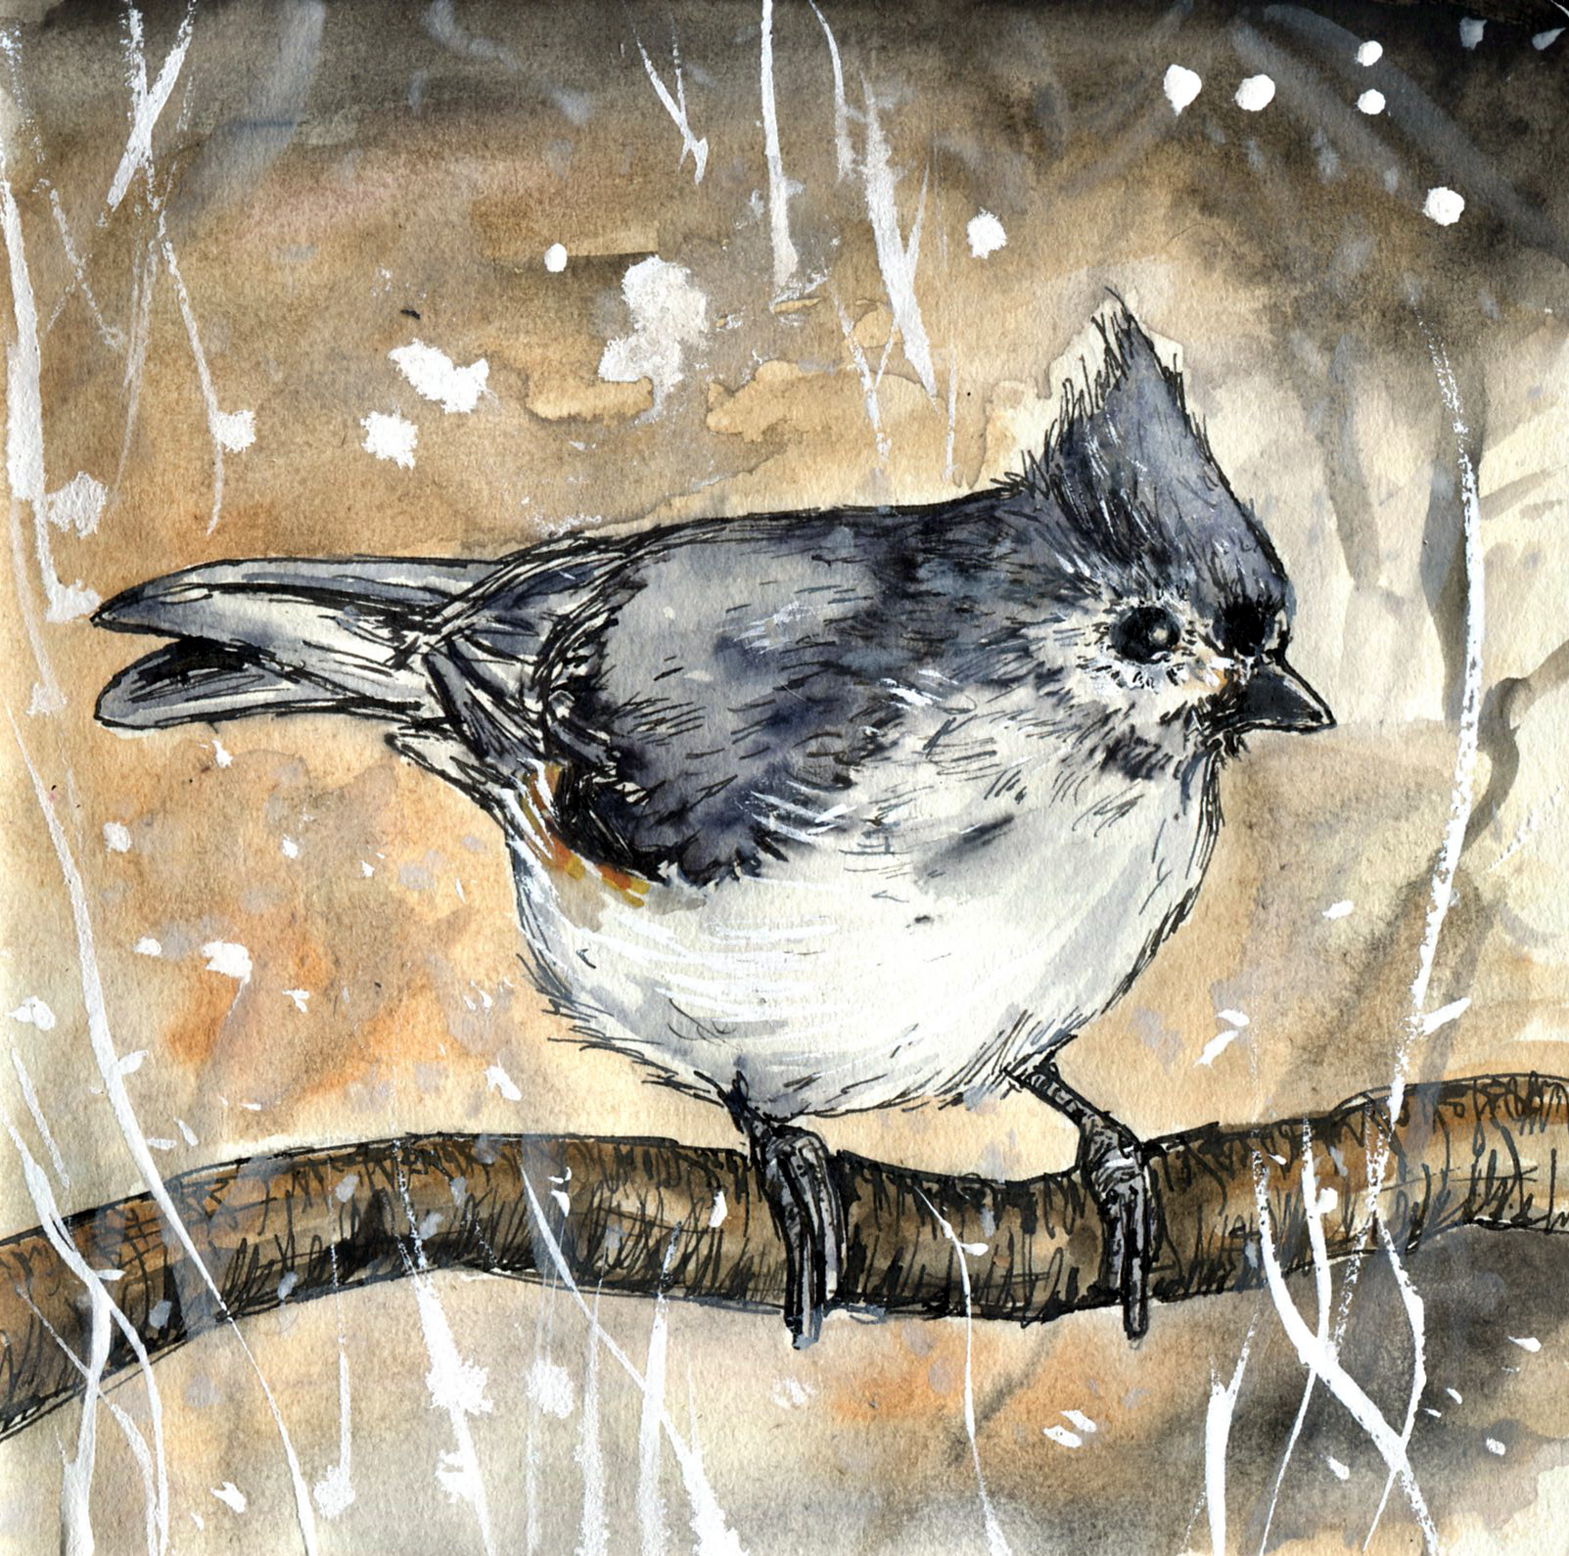 85. Tufted Titmouse